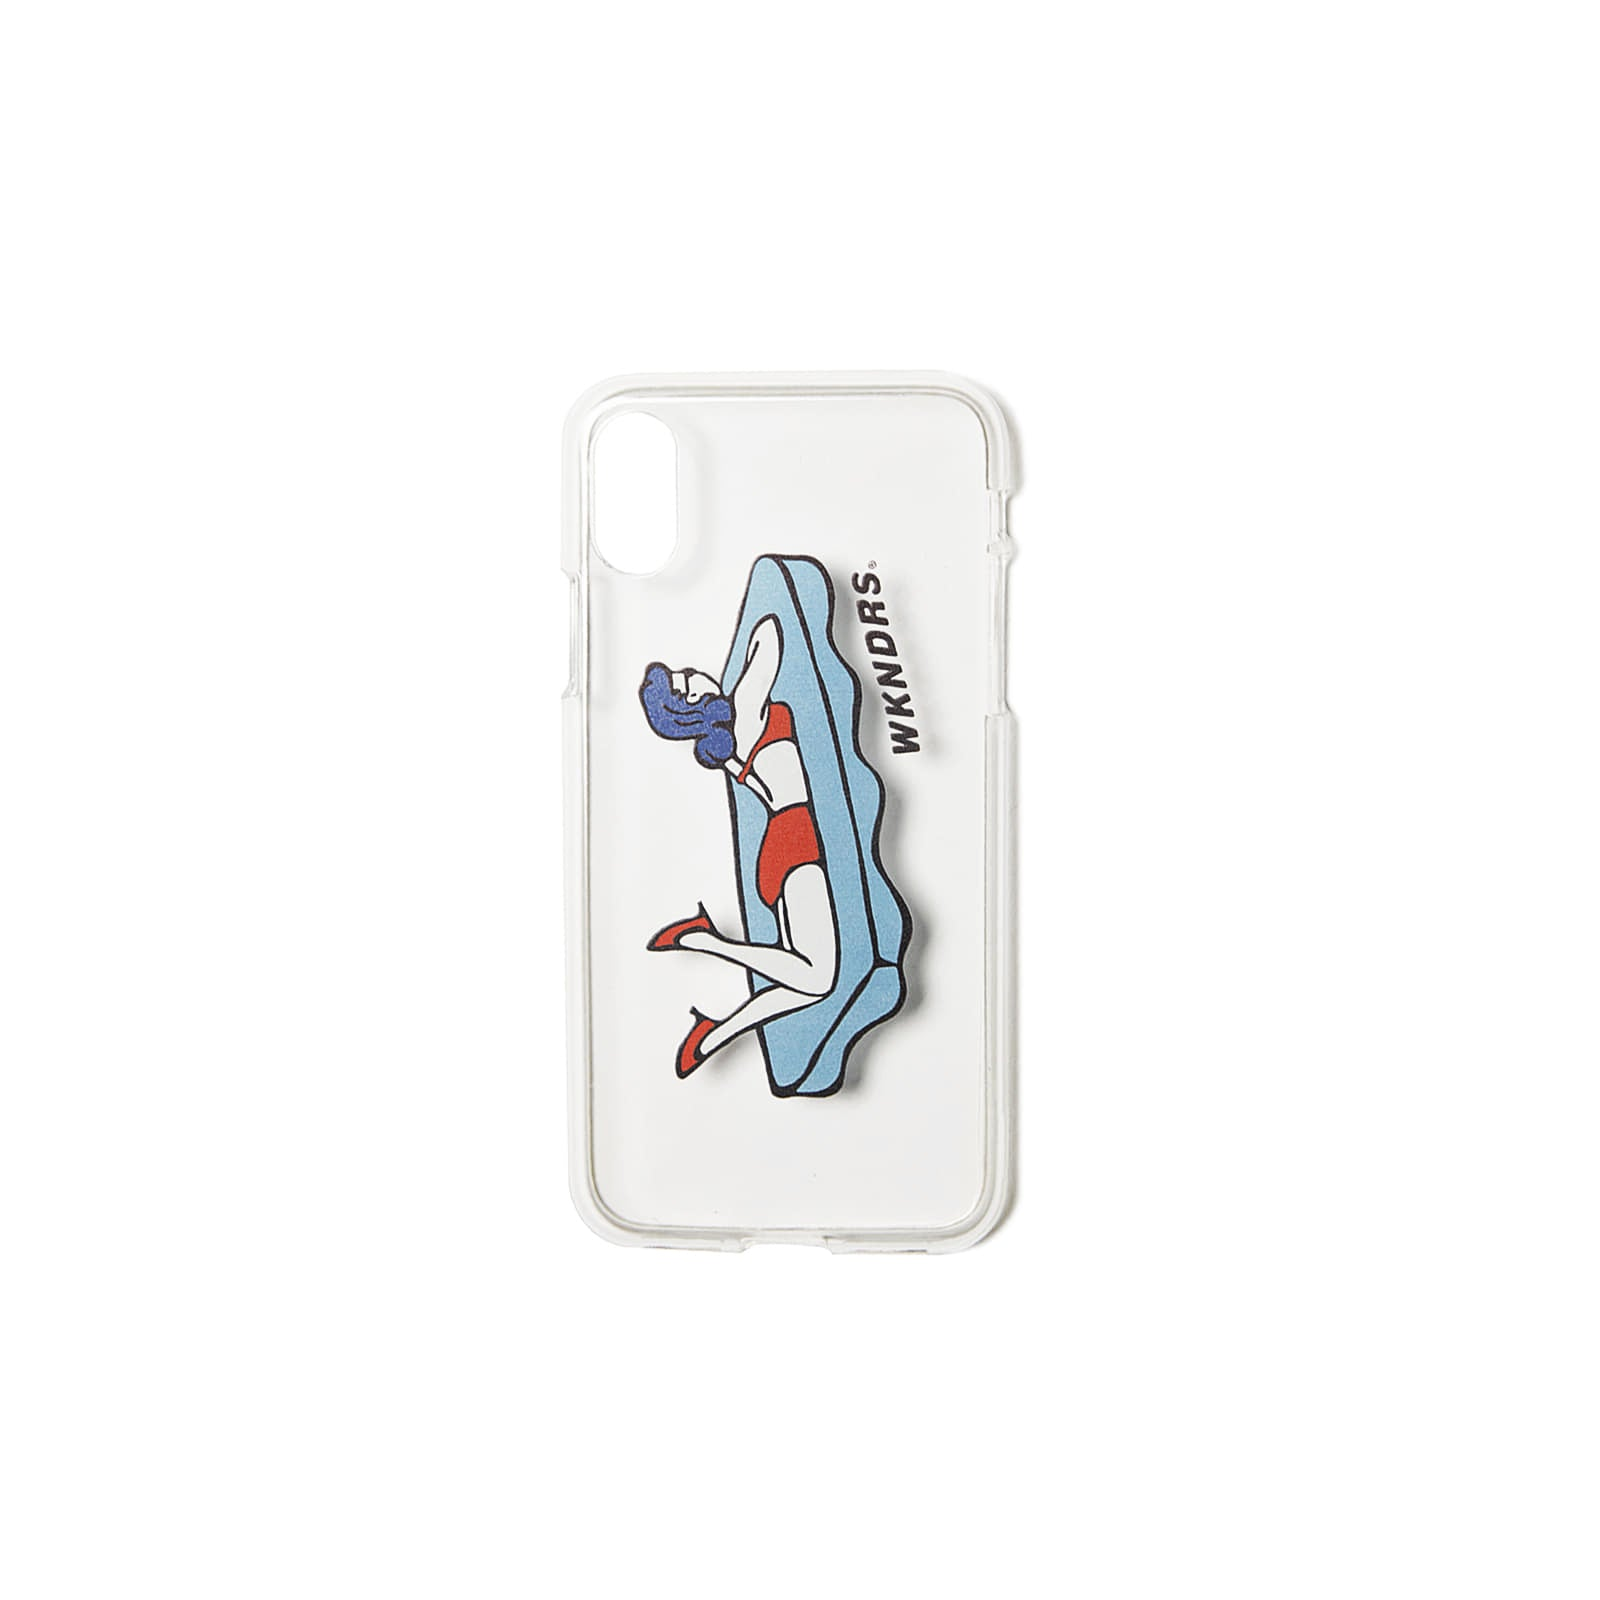 FG Iphone CASE (WHITE)